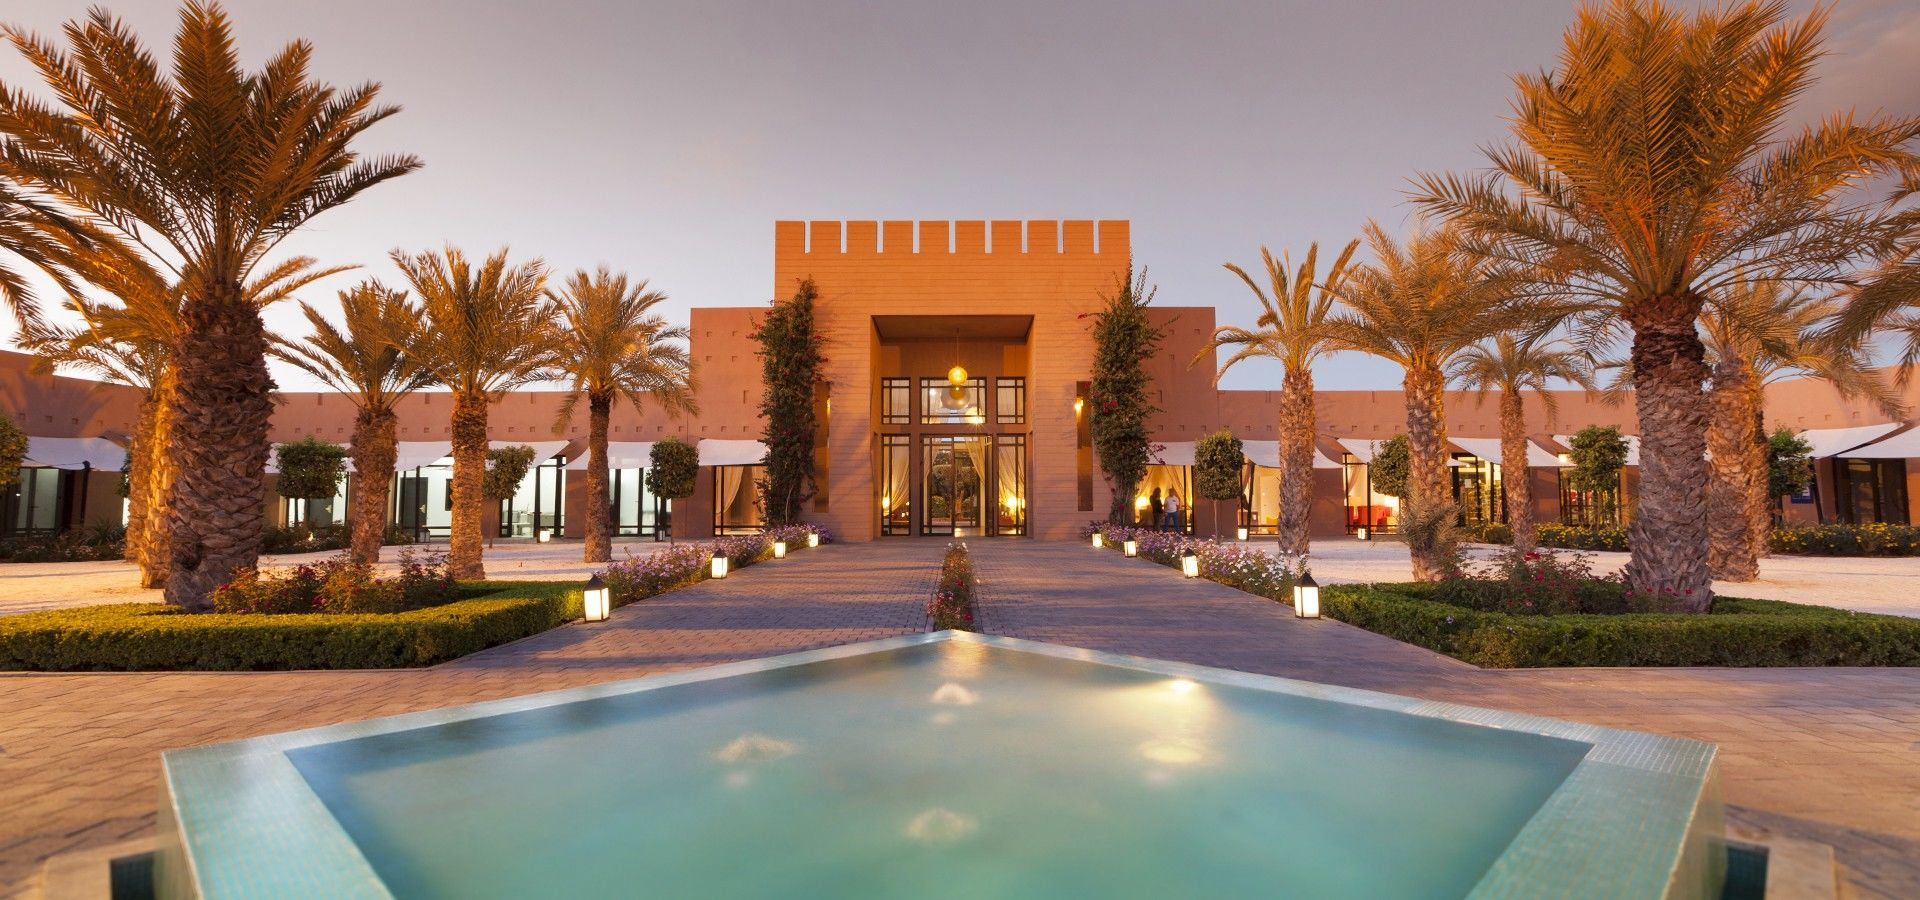 Club Coralia Aqua Mirage Marrakech 4*